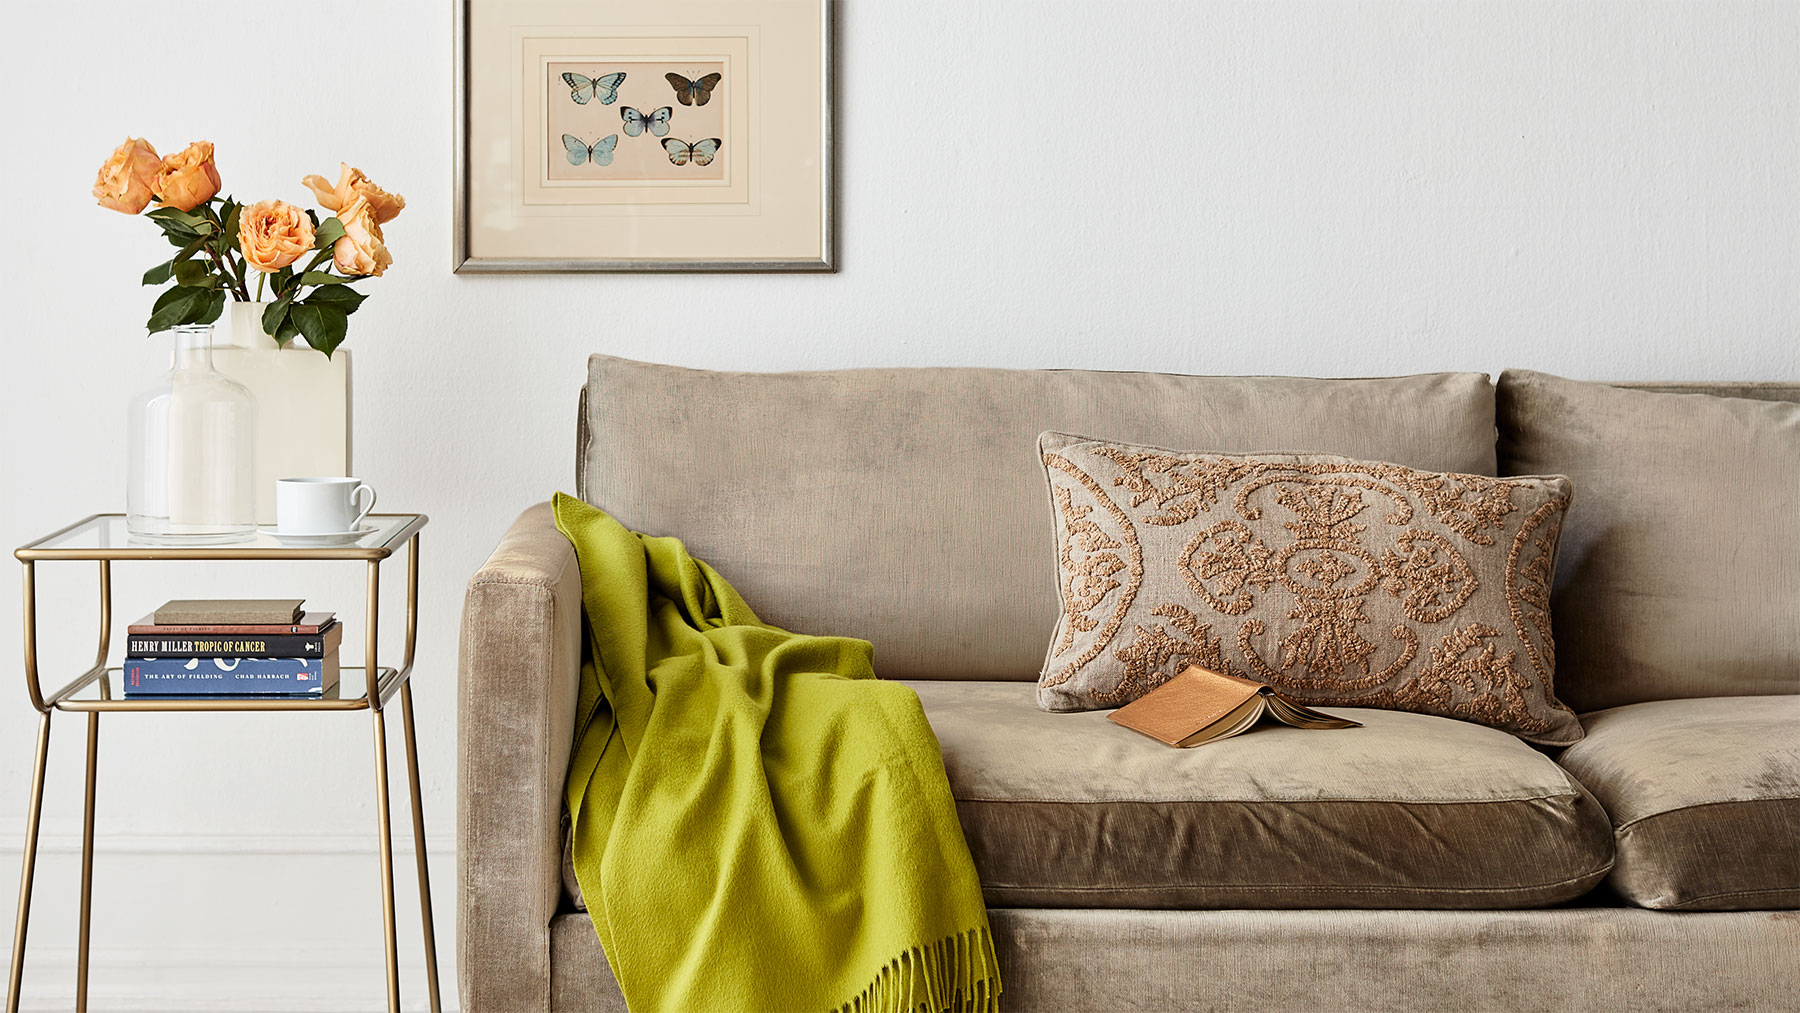 9 Simple Ways to Spruce Up an Old Sofa